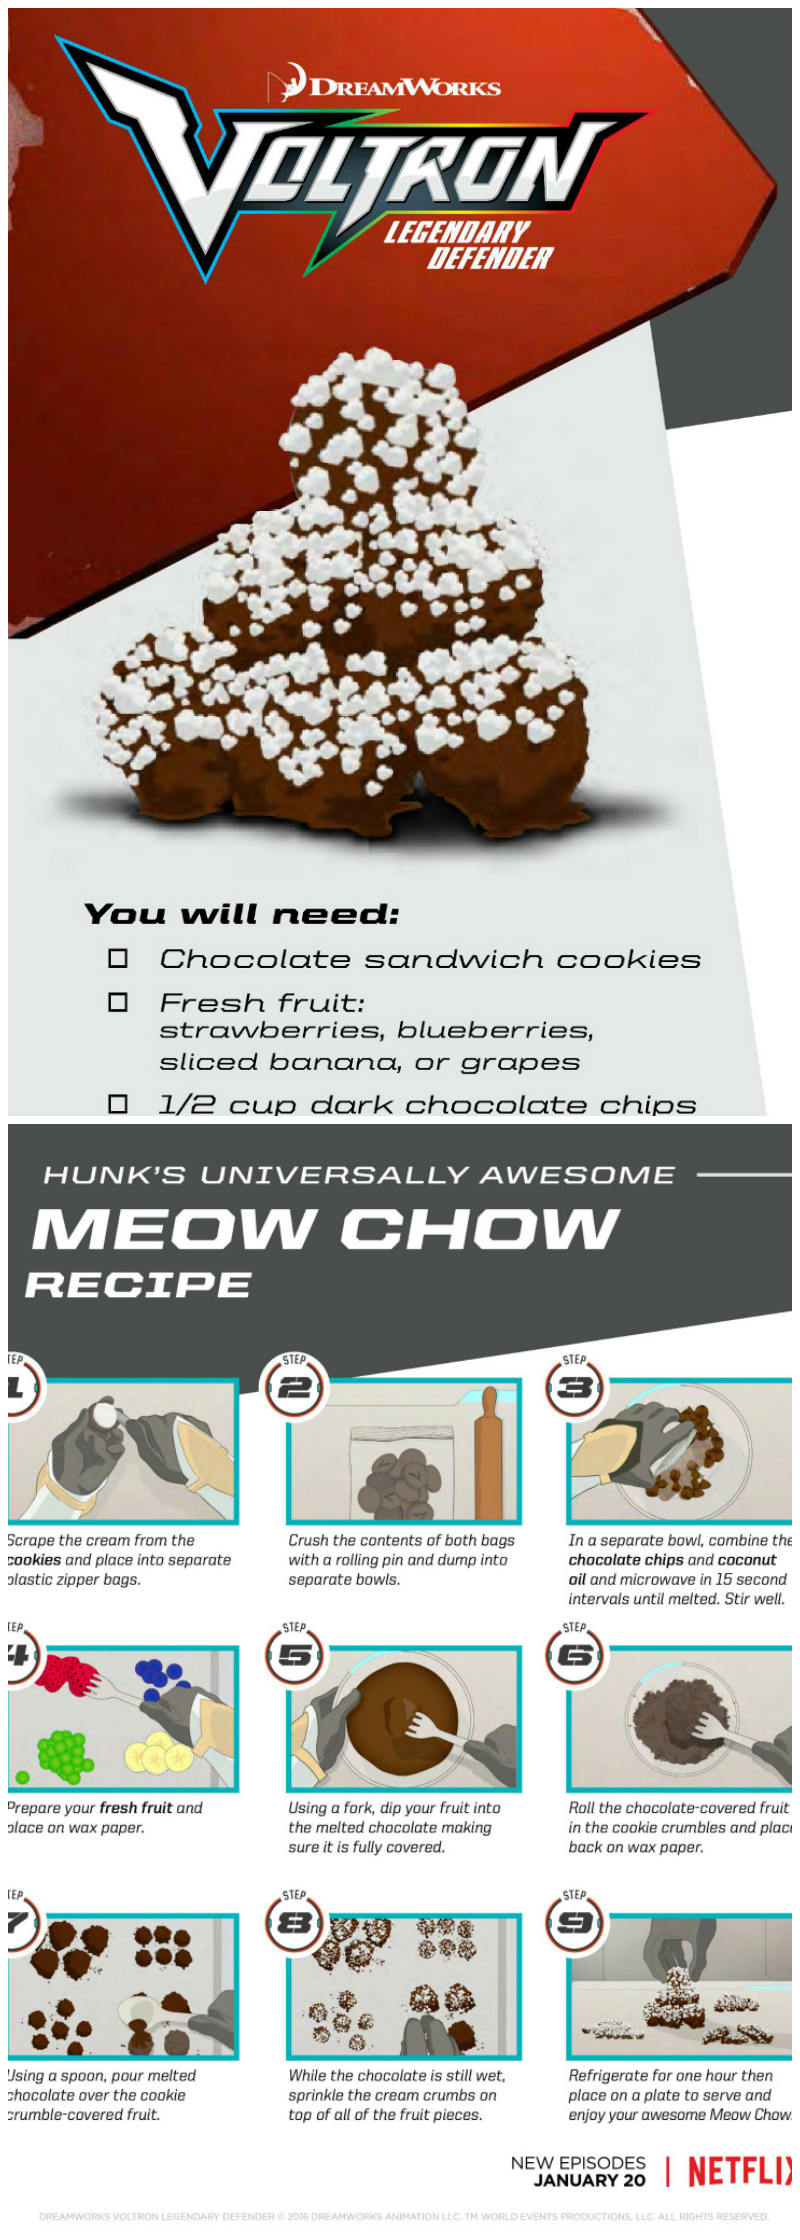 Voltron Meow Chow Recipe